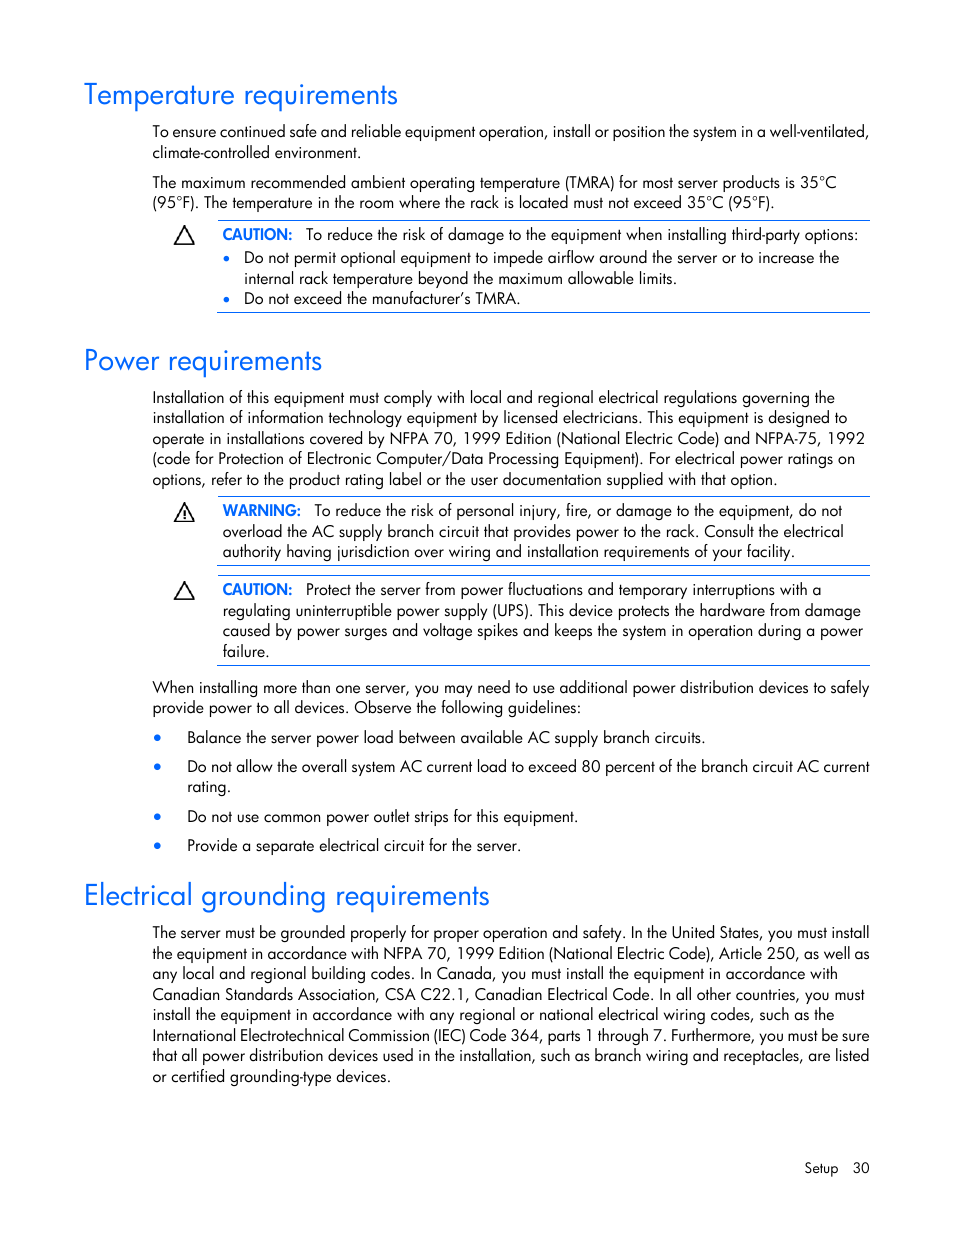 Temperature requirements, Power requirements, Electrical grounding ...